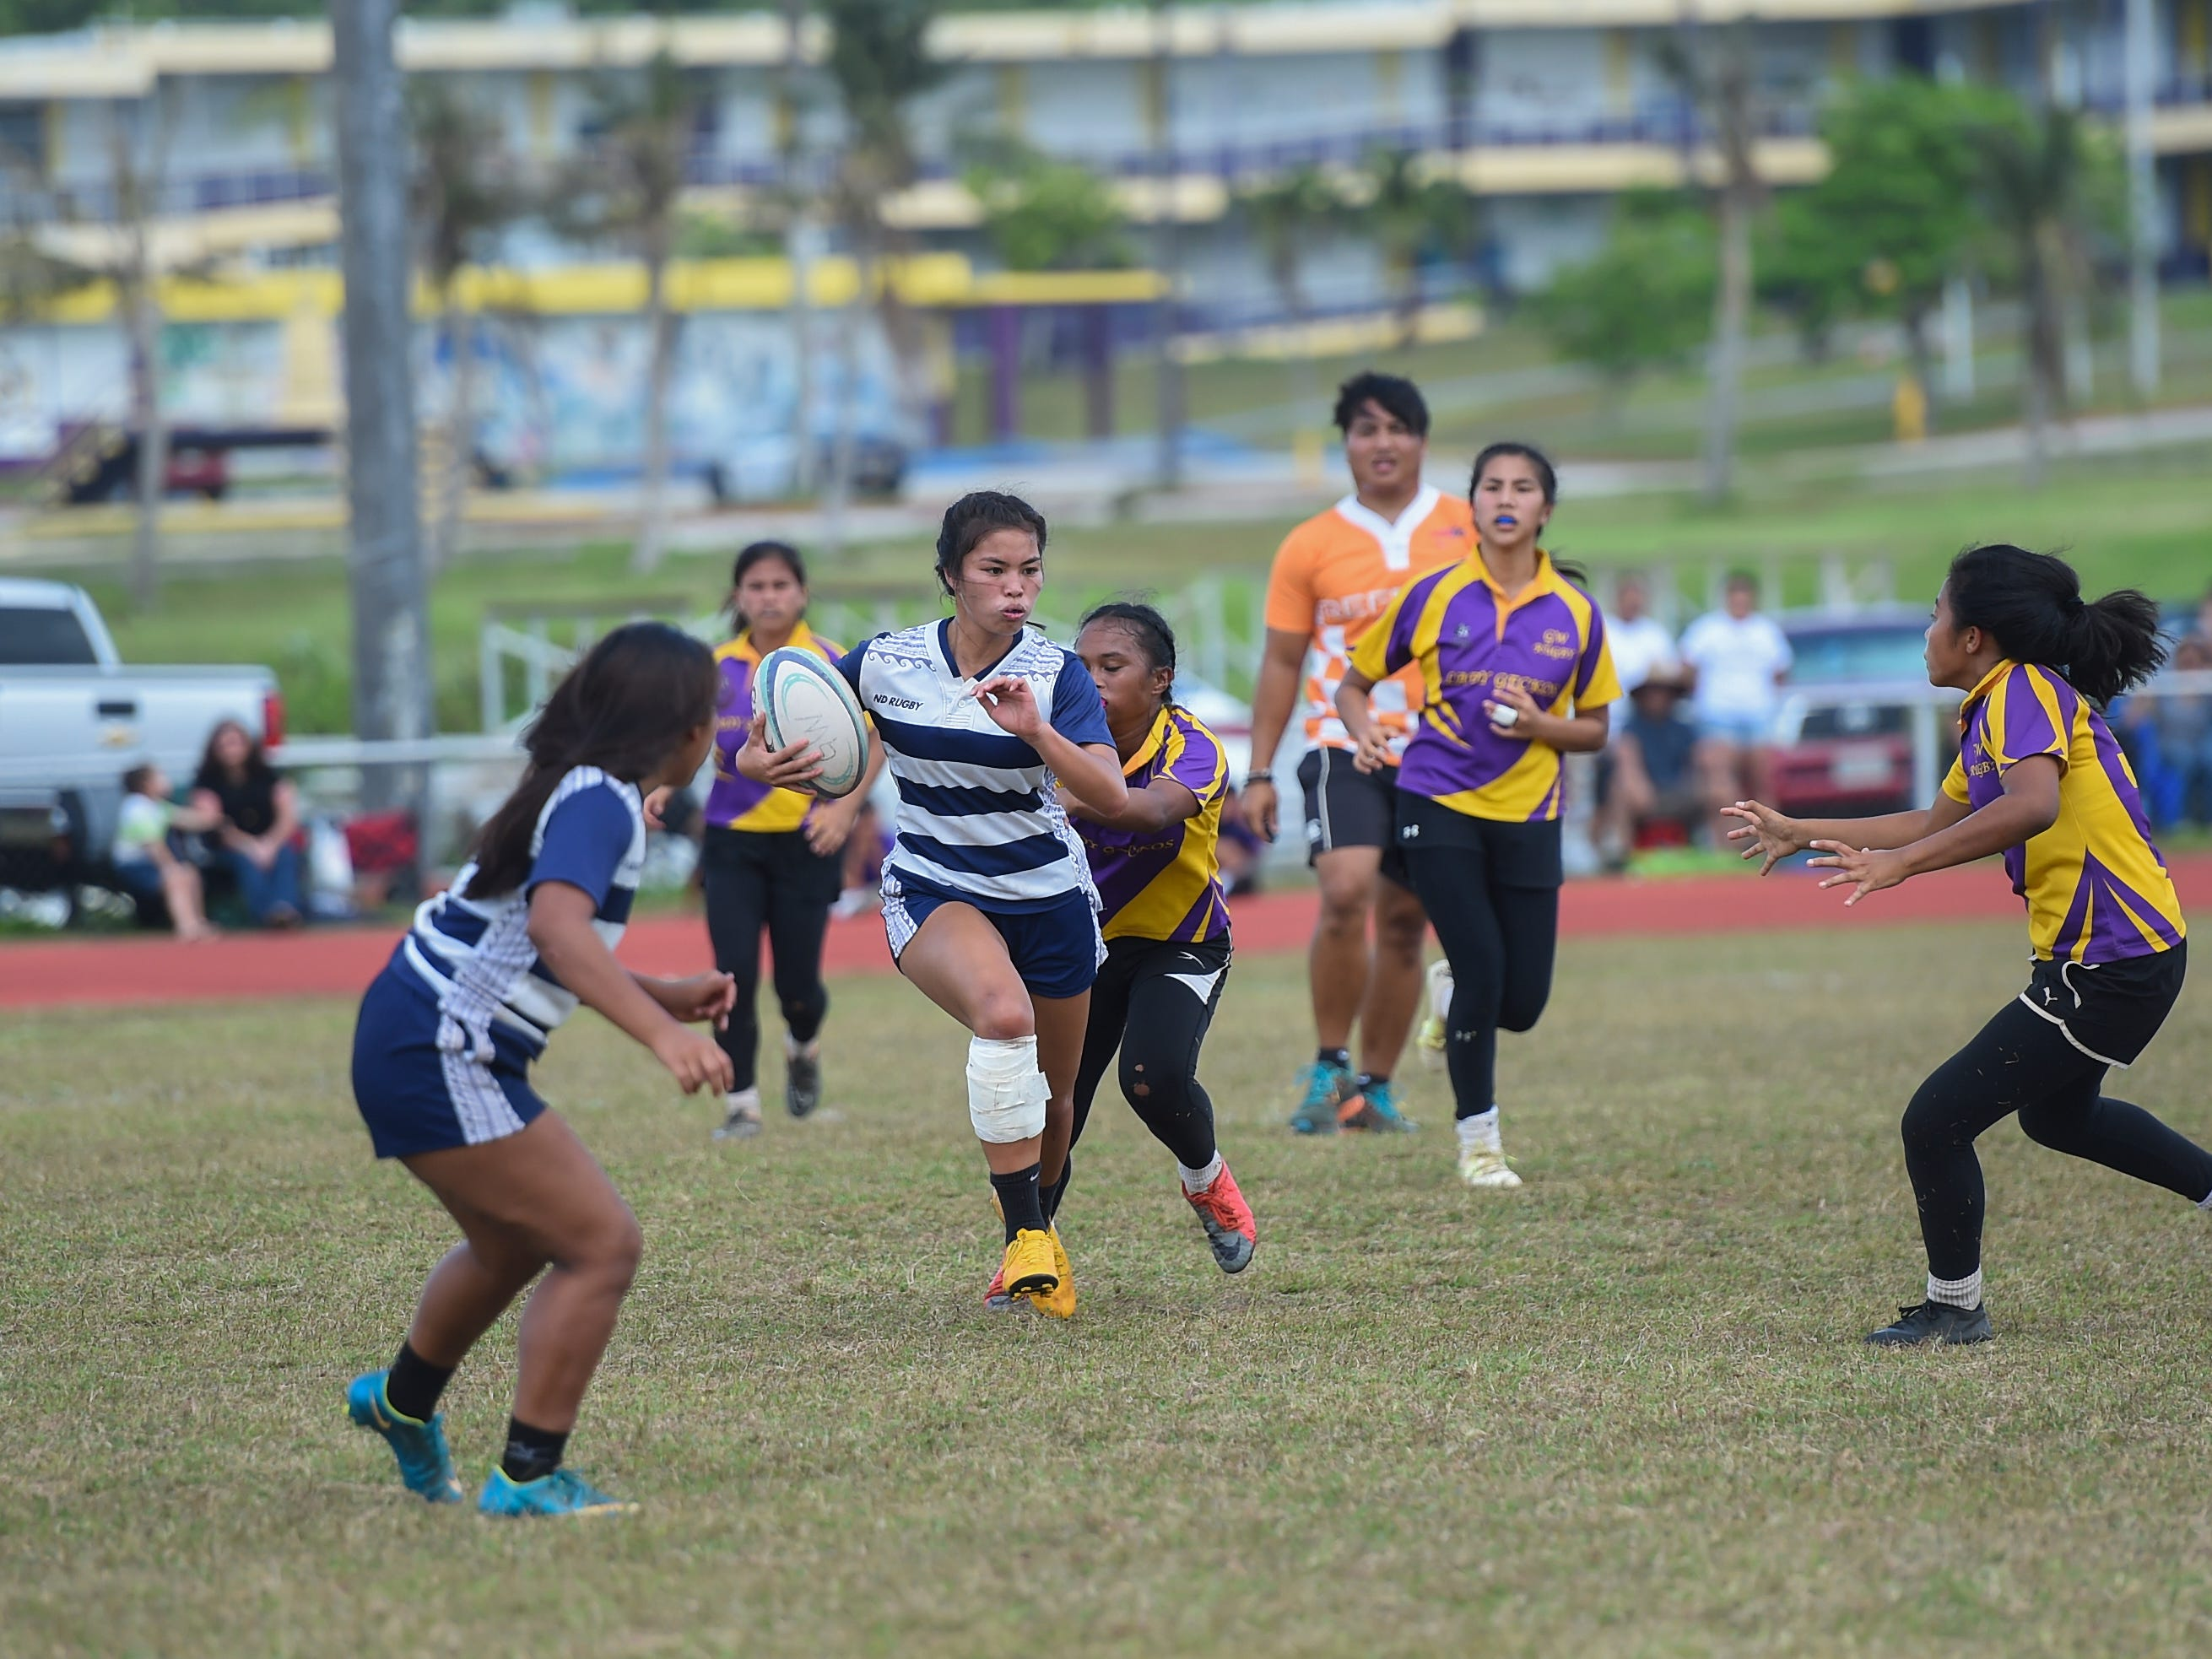 Notre Dame's Taylor Paige Aguon carries the ball against the George Washington Geckos during their GRFU/IIAAG Girls Rugby Finals game at the GW High School Field in Mangilao, March 16, 2019. The Royals went on to beat the Geckos 21-17 for the rugby title.